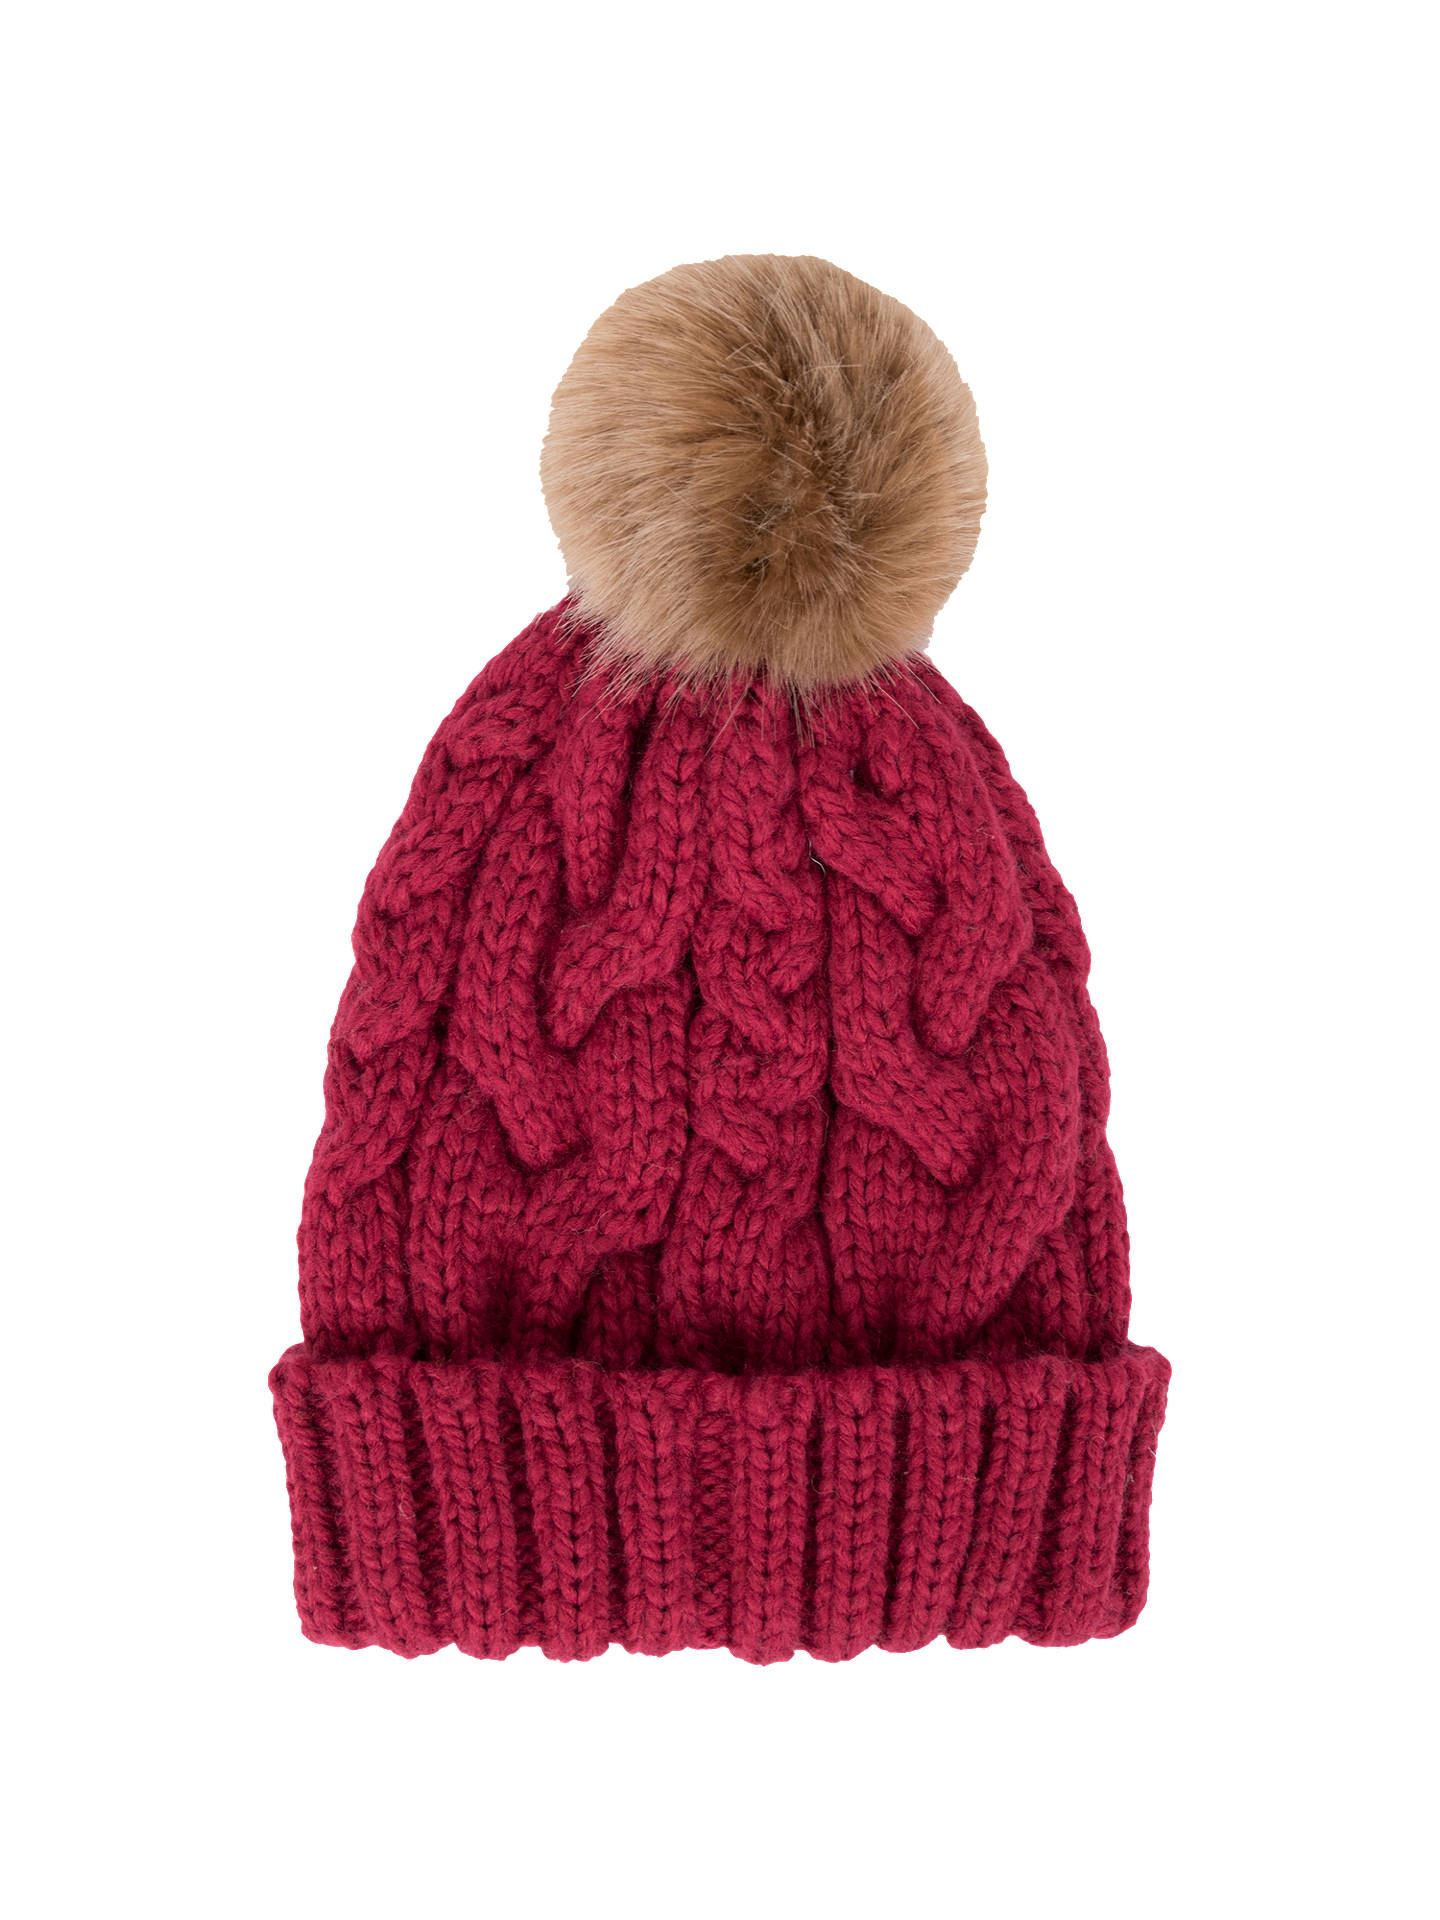 1f810aa0cf275 Powder Charlotte Cable Knit Faux Fur Pom Pom Beanie Hat at John ...